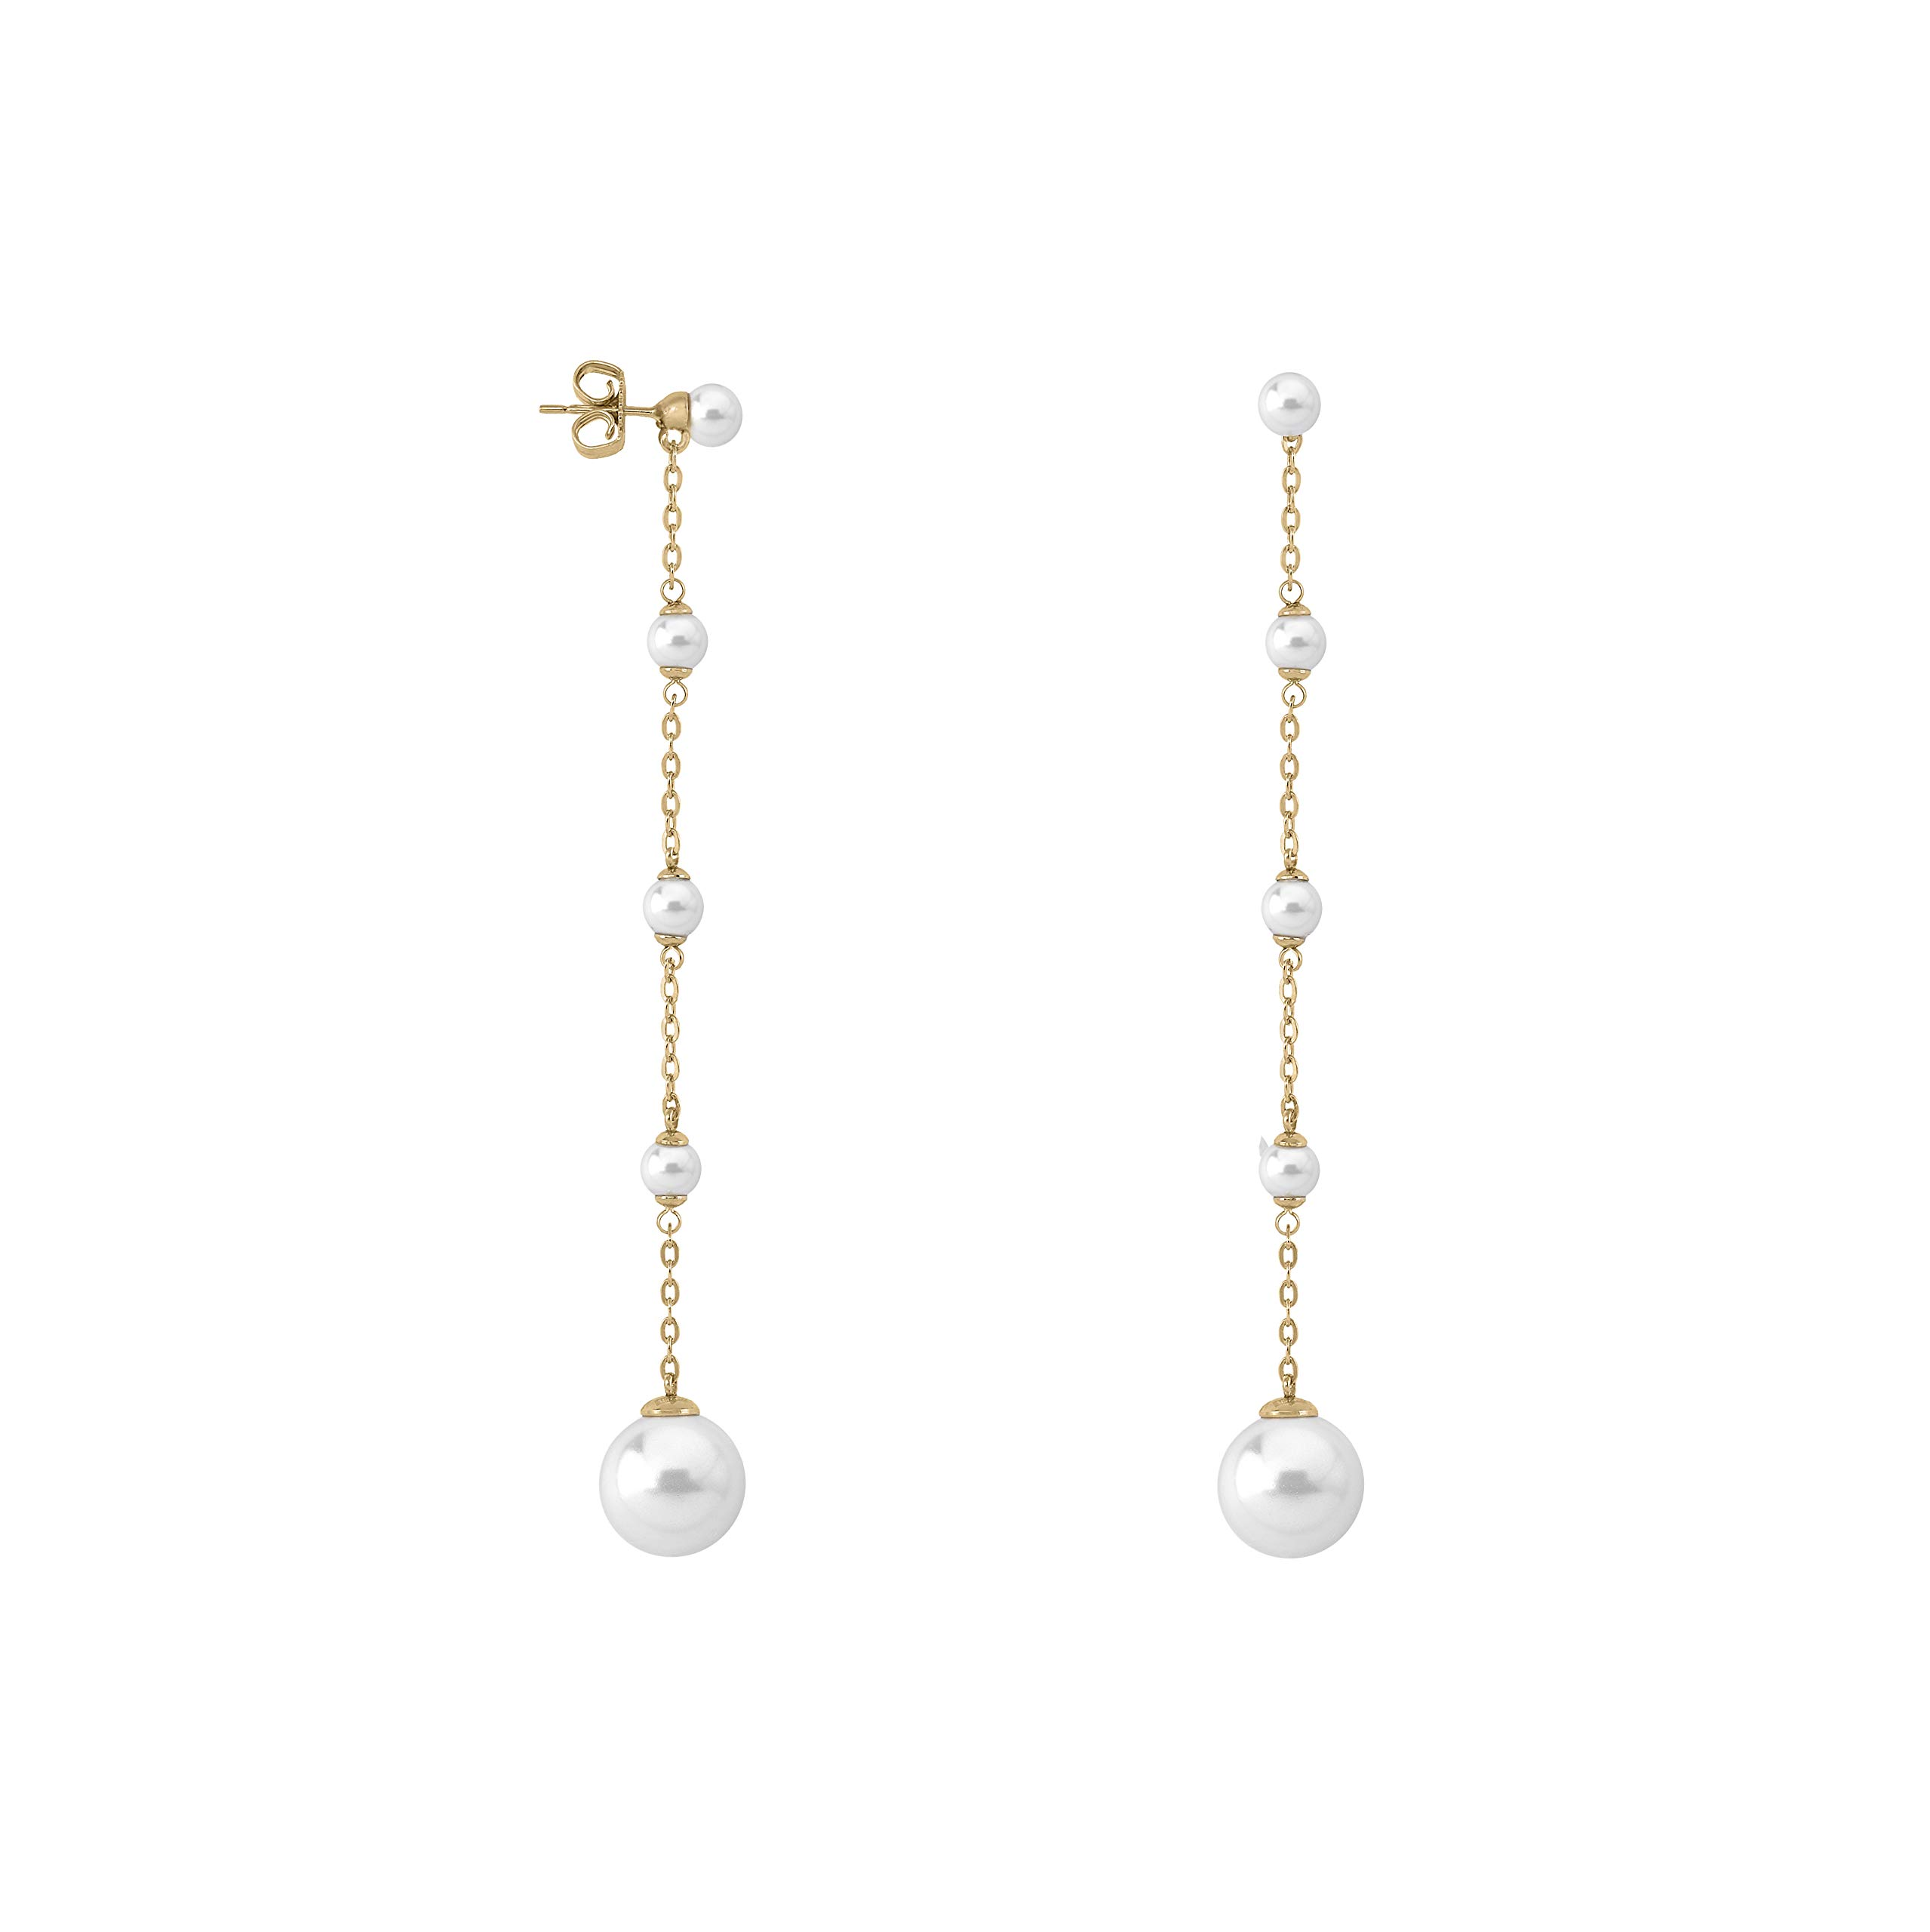 Majorica Rosa 5-12MM White Round Pearl And Cz Gold Plated Silver Linear Earrings